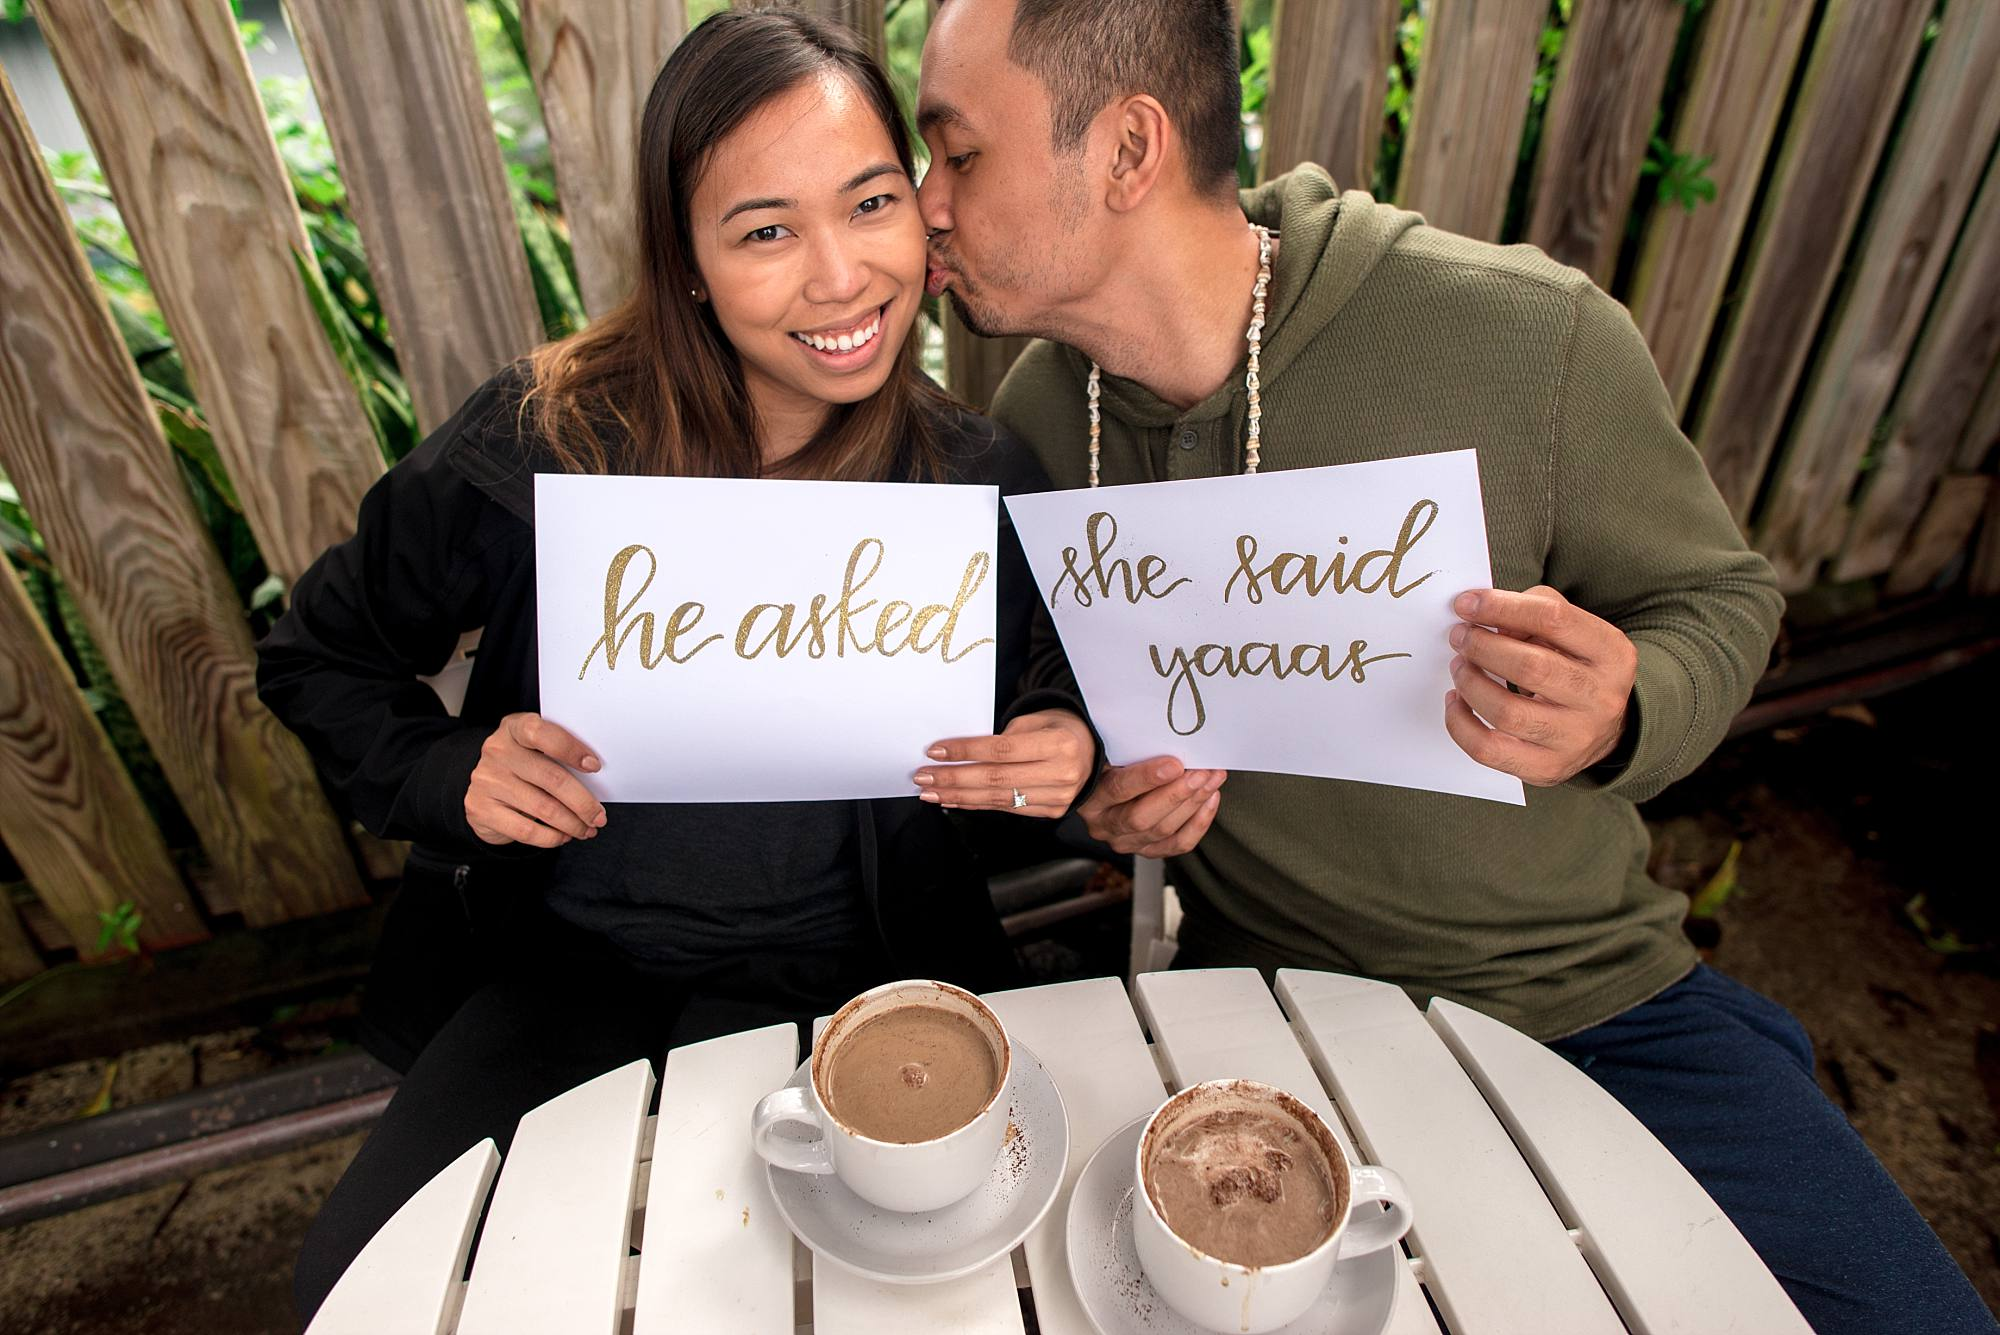 man and woman holding signs kissing and drinking coffee